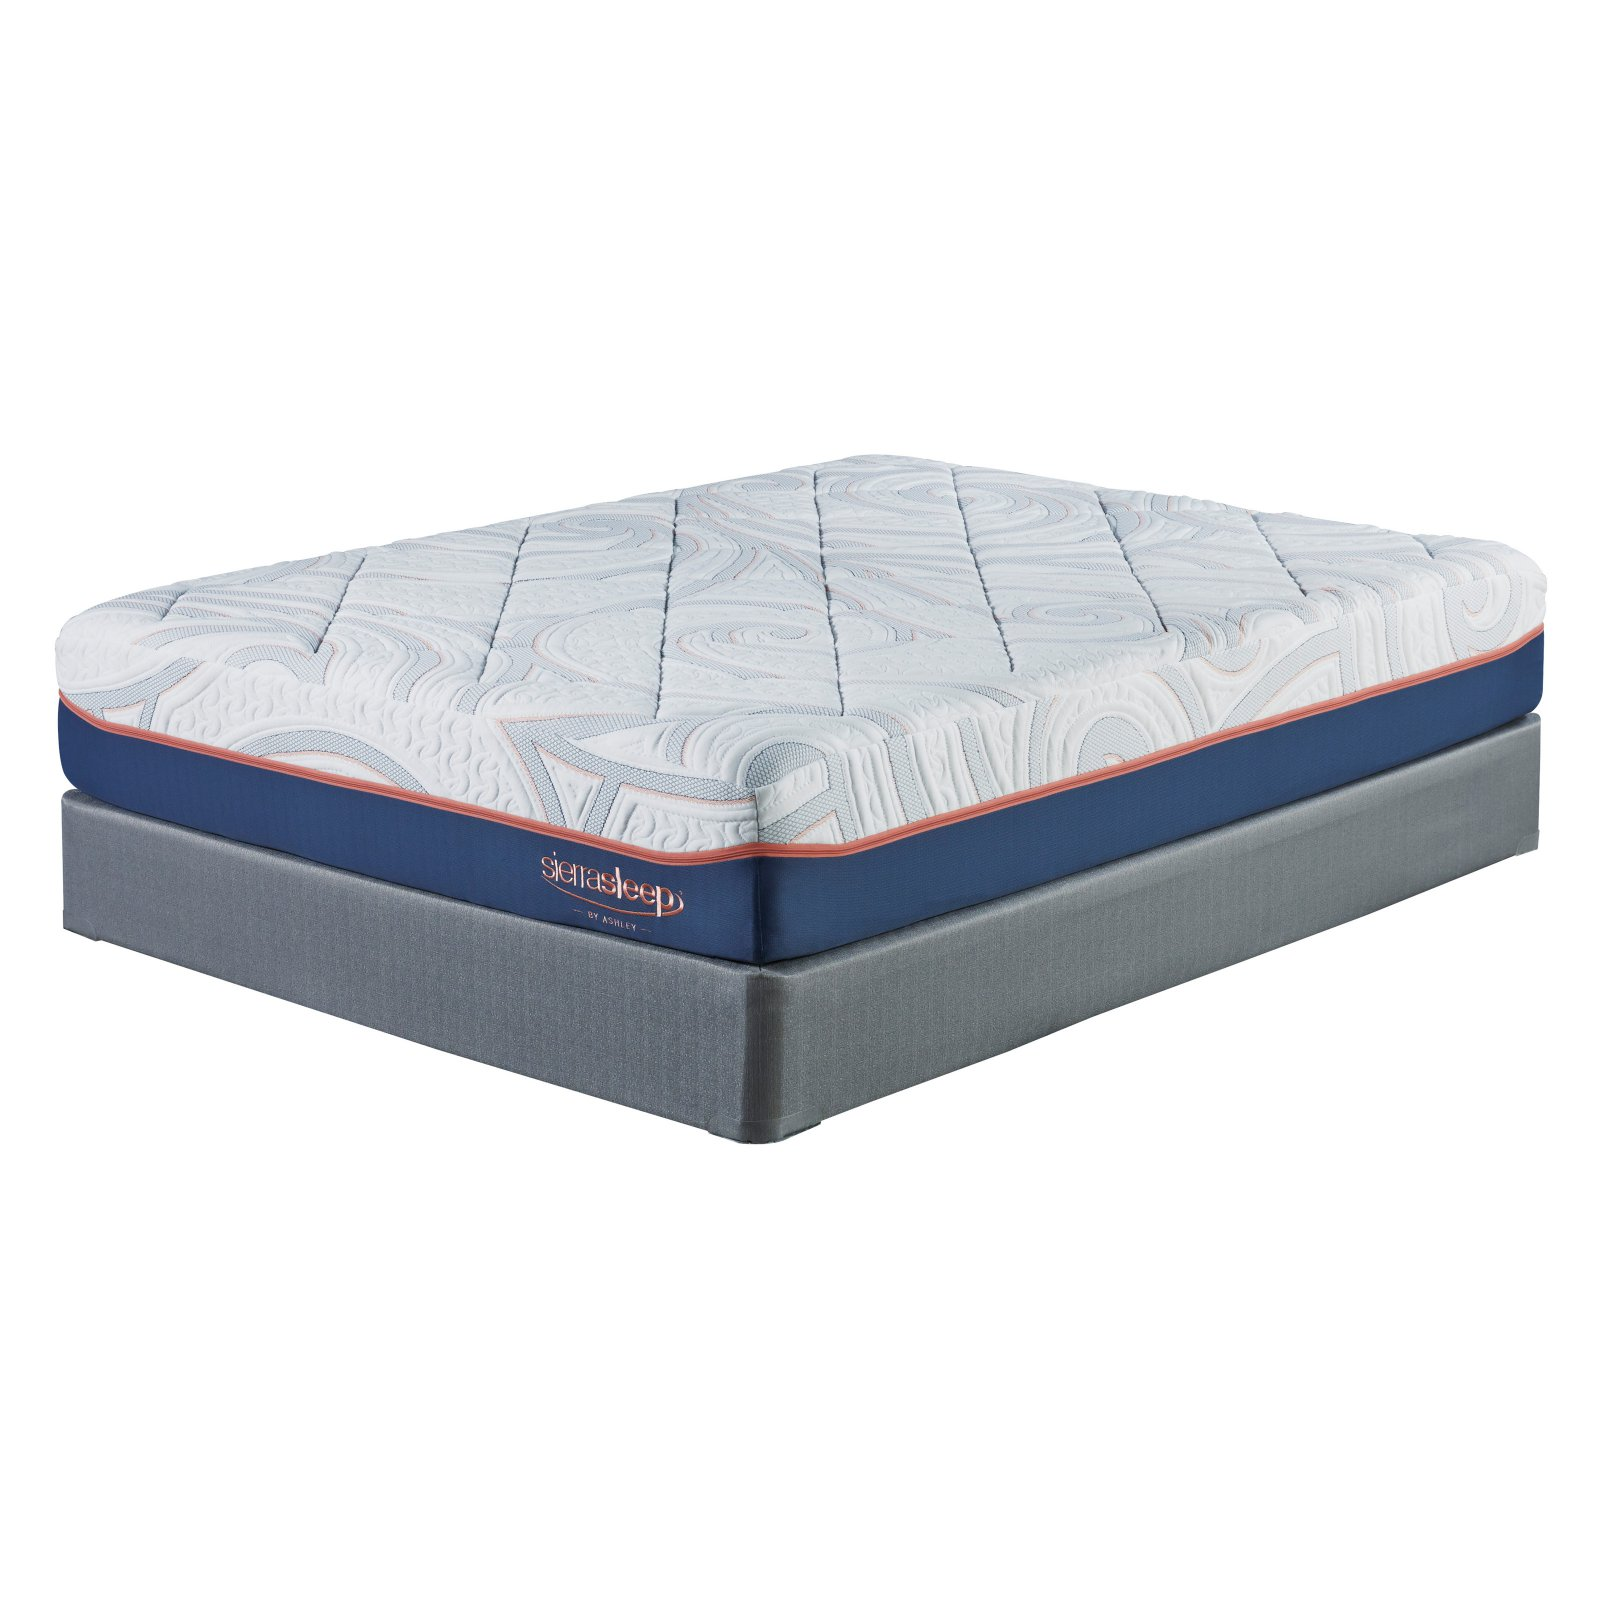 Sierra Sleep by Ashley MyGel 12 in. Memory Foam Mattress